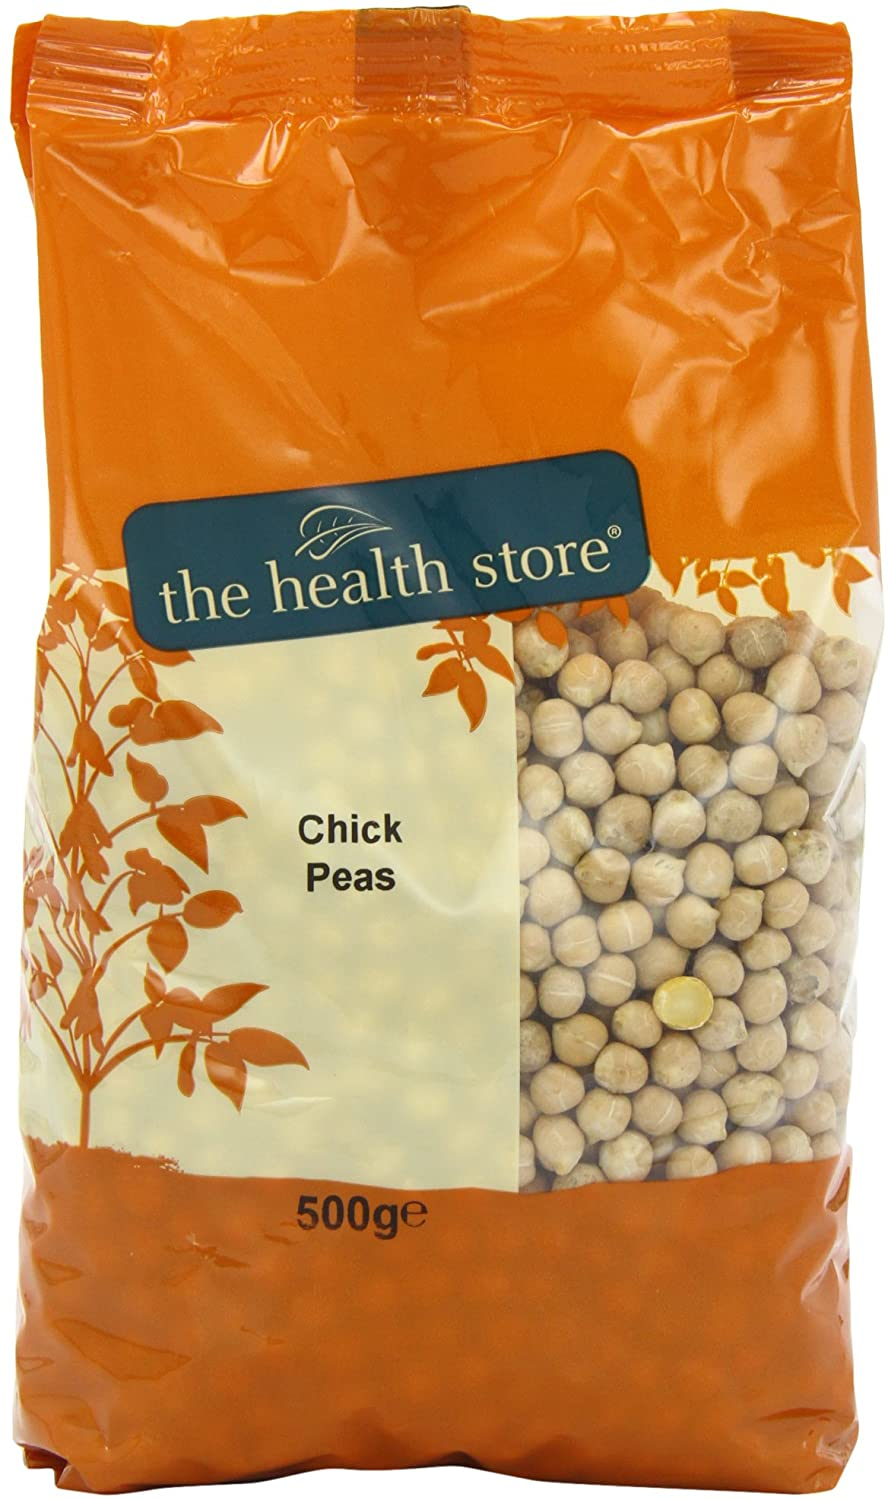 The Health Store Chick Peas 500g x 6